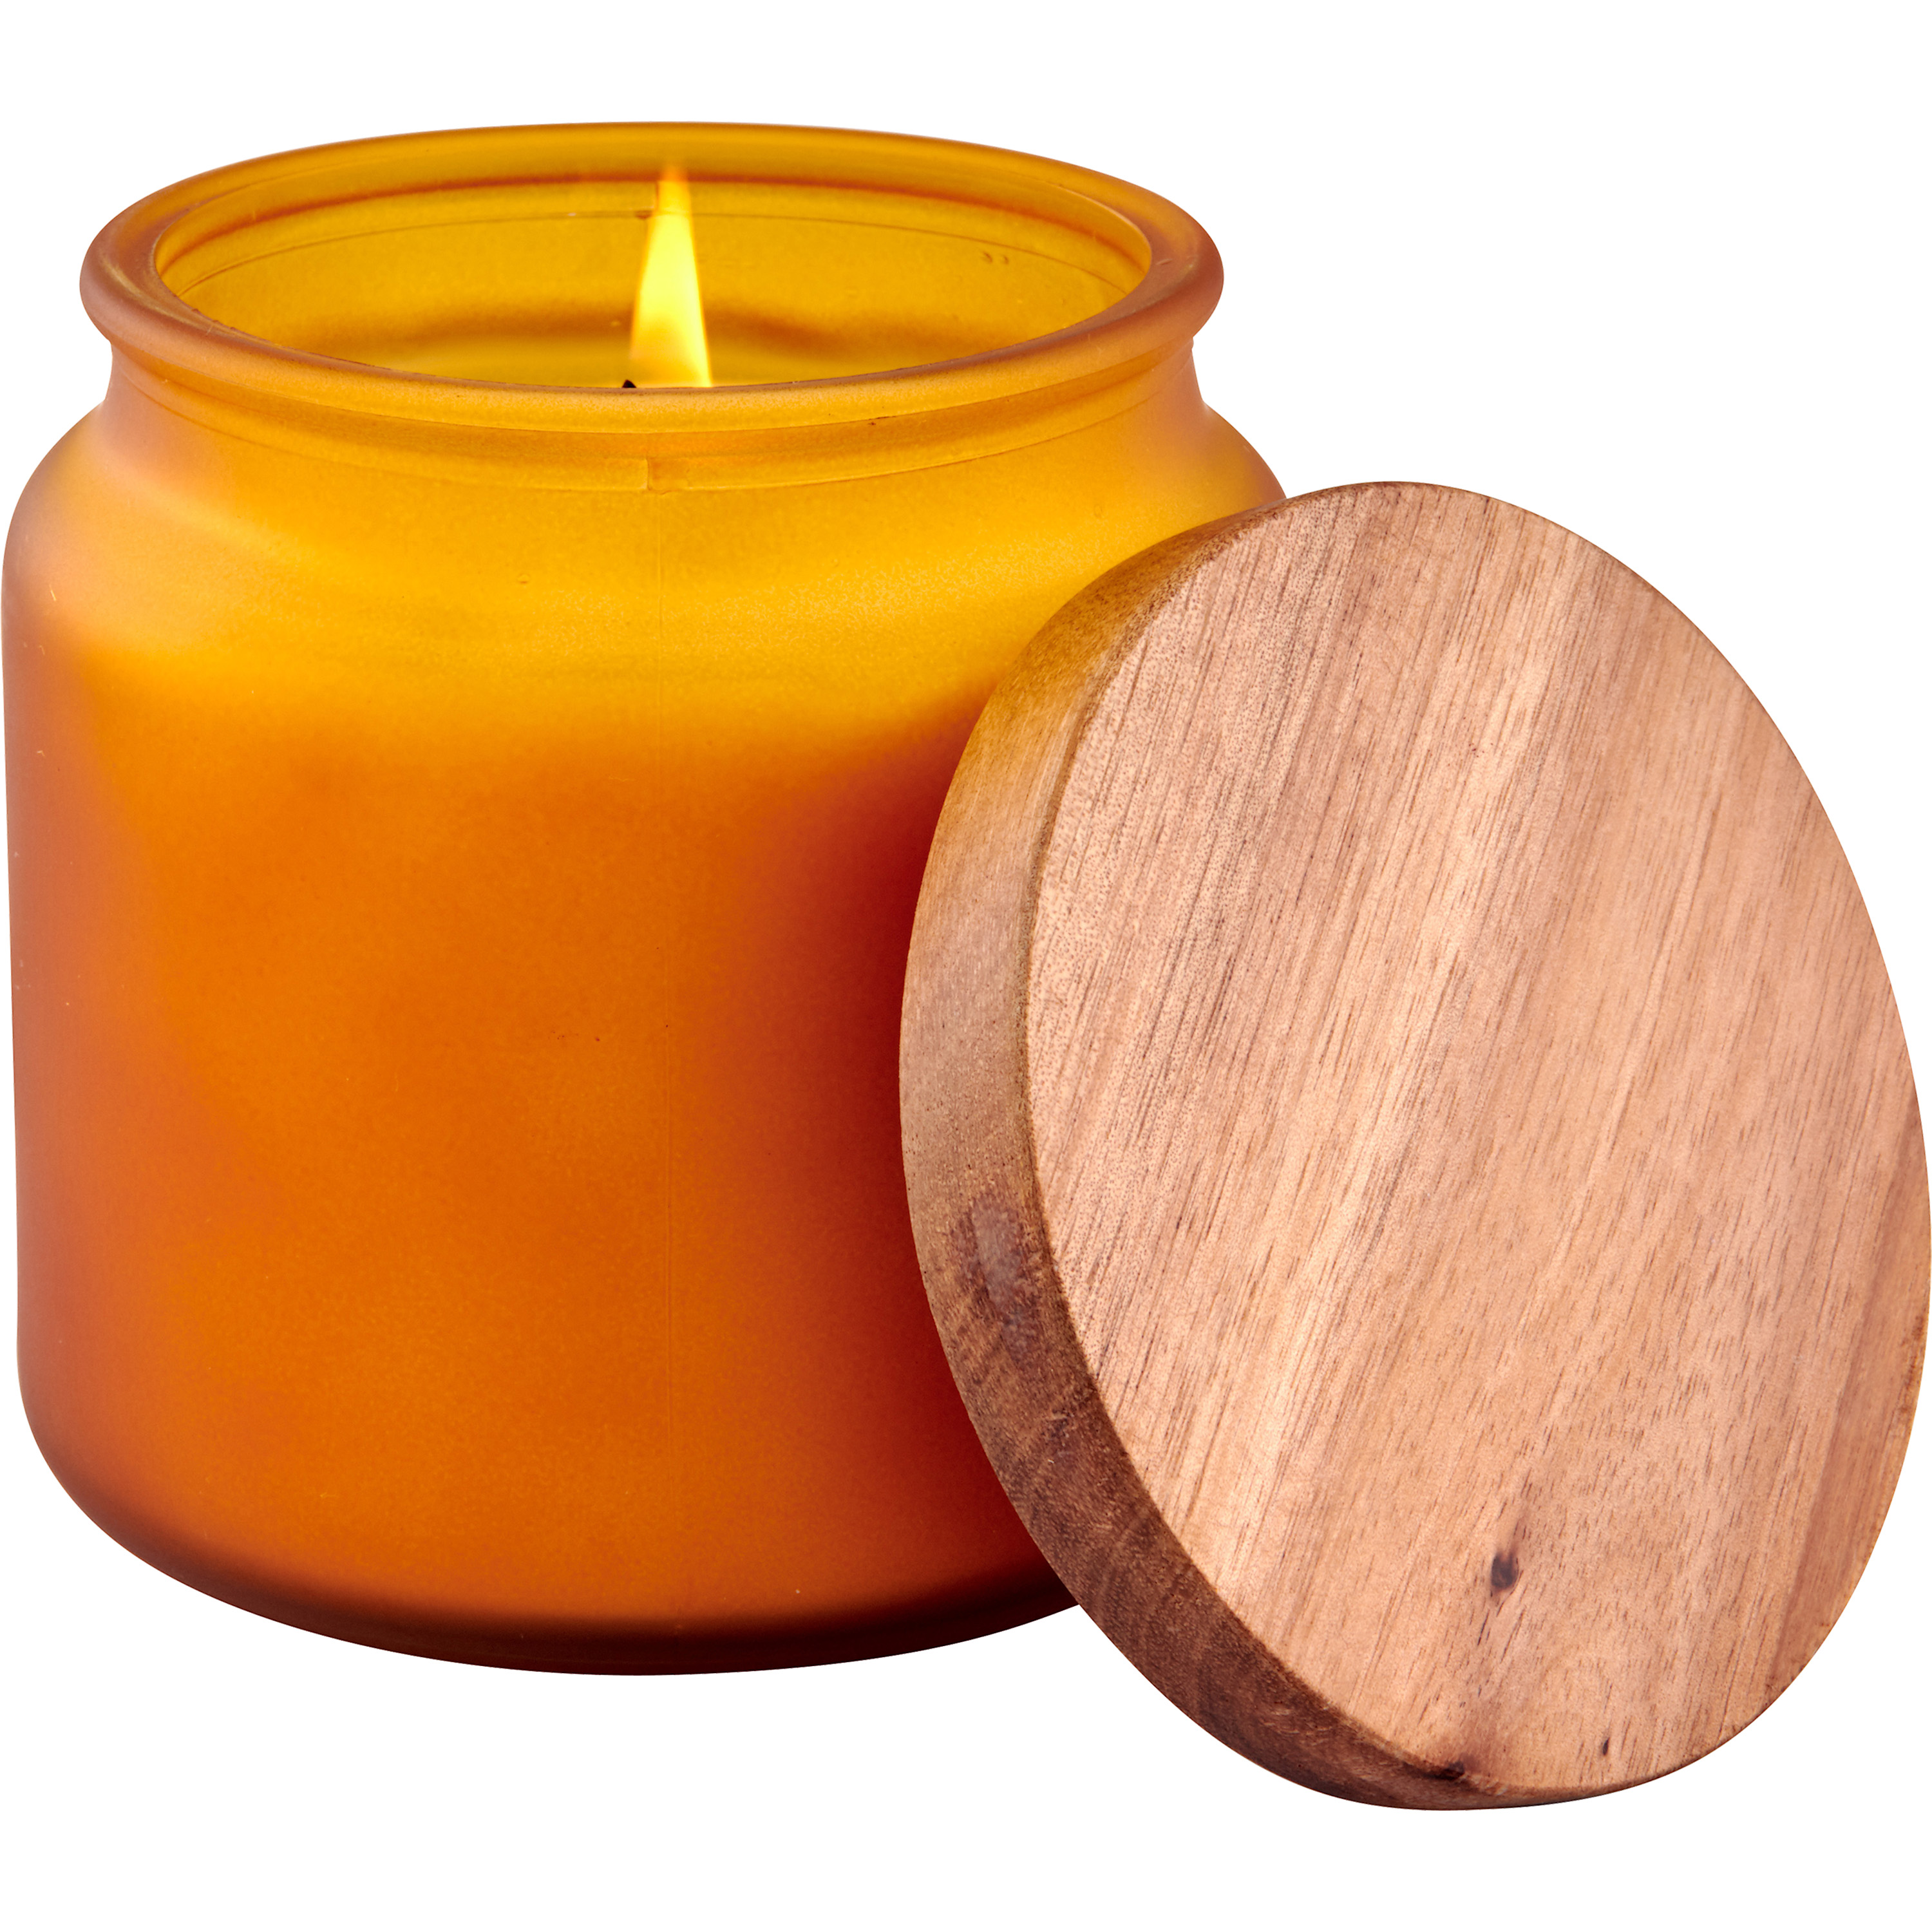 Better Homes & Gardens Golden Yellow Frosted Glass Single-Wick Candle with Wooden Lid, Soft Cashmere Amber